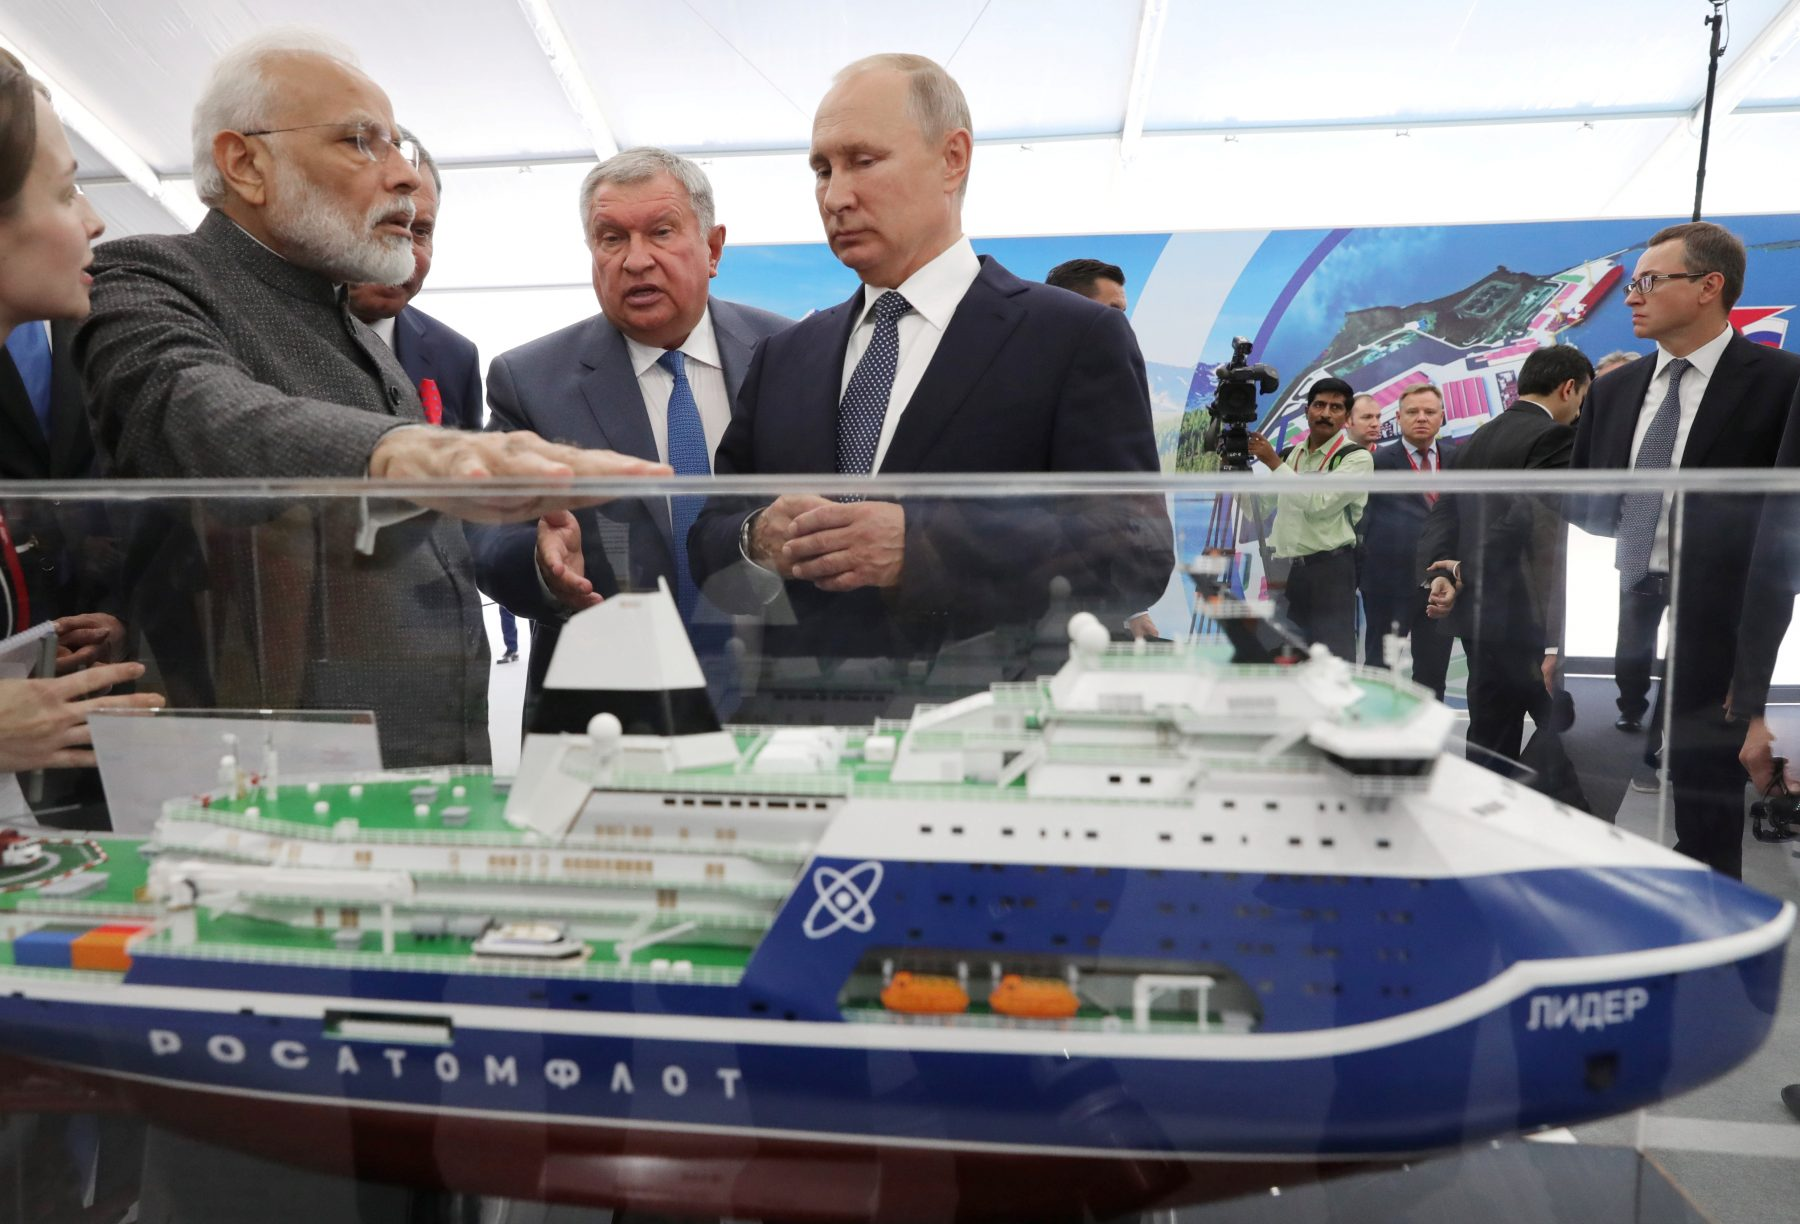 Putin, Modi work on Arctic cooperation during Russia meeting